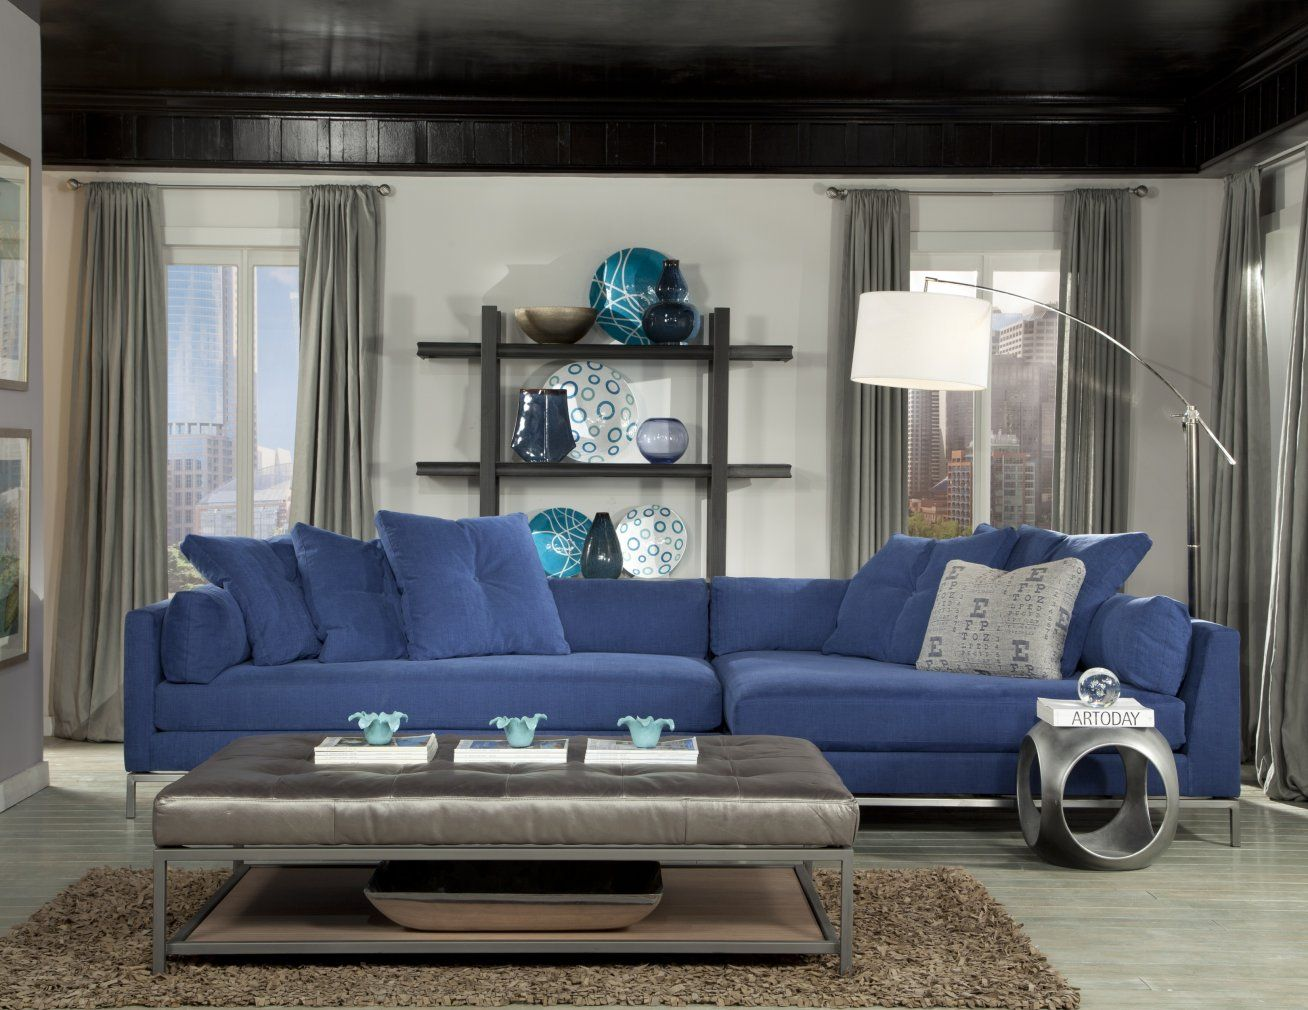 Living room furniture cordoba 2 pc sectional - Jonathan Louis Furniture